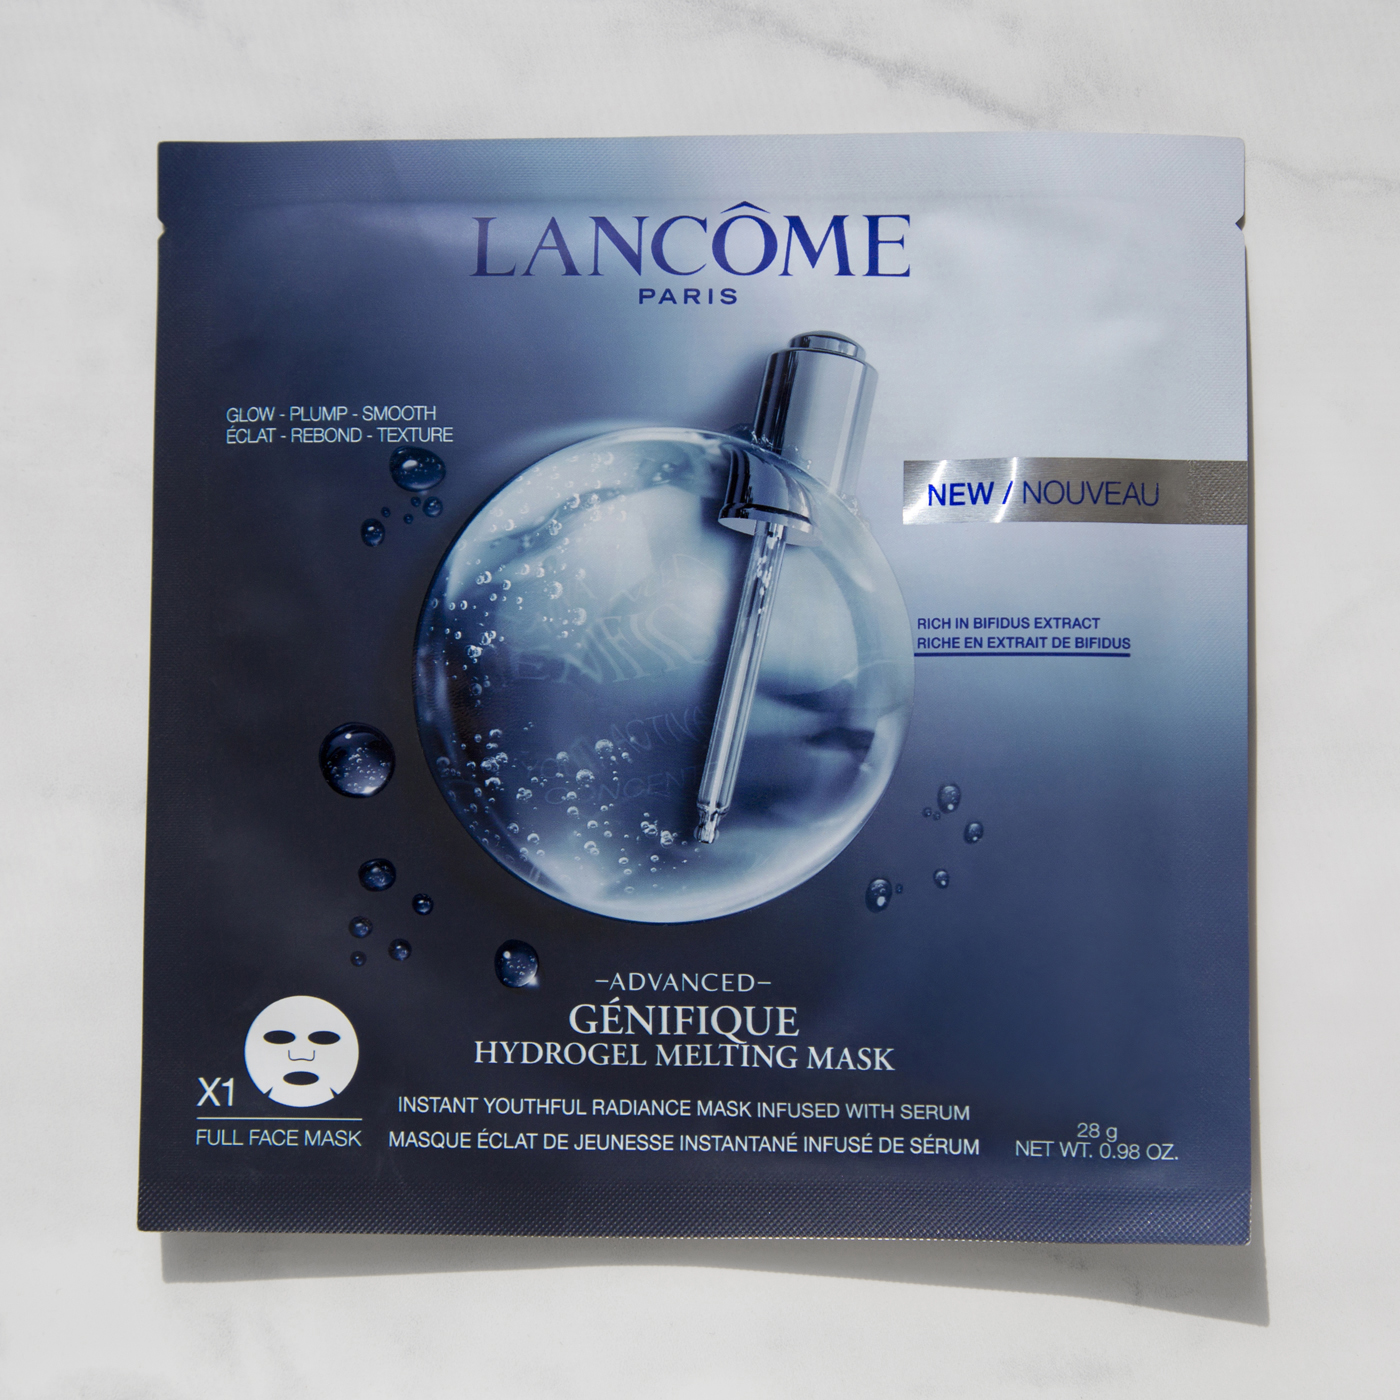 Lancôme Advanced Génifique Hydrogel Melting Mask $15 for 1 or $55/4 - My Rating: ☆☆☆☆ 1/2Duration: up to 30 minutesWhat It Is: Hydrogel mask that is supposed to give the skin instant radiance, hydration, smoothness, and plumpness and is suitable for all skin types.Performance: Very scented, like this would give you a headache if you're sensitive to fragrance. Because of the fragrance I was really worried about having a breakout since fragrance is a common skin irritator but I did not have any negative reactions to this mask. There's three layers to the mask, the mask itself and then it has a protective layer on each side, so that makes it difficult to apply imo and adds more waste which is not ideal but I like that it's not a cloth mask since those tend to dry out my skin. The directions say you can leave it on for 10-30 minutes so of course I had to do the full 30. Afterwards my skin looked incredible; super plumped, hydrated and just very healthy looking. There was not much excess serum left in the packet, which is a pro to me because that means it stays in the mask which goes on the skin, so I applied whatever was left and was able to sleep with just the serum on since it was hydrating enough for my dry/dehydrated skin. When I woke up my skin still looked really good and didn't have any sort of reaction. This mask is almost perfect except for the price and scent which is why I took off a half star.Would I Recommend: Yes, I would definitely recommend this mask if you have the coin for it. It's expensive but it really does work.Sephora Rating: ☆☆☆☆.3